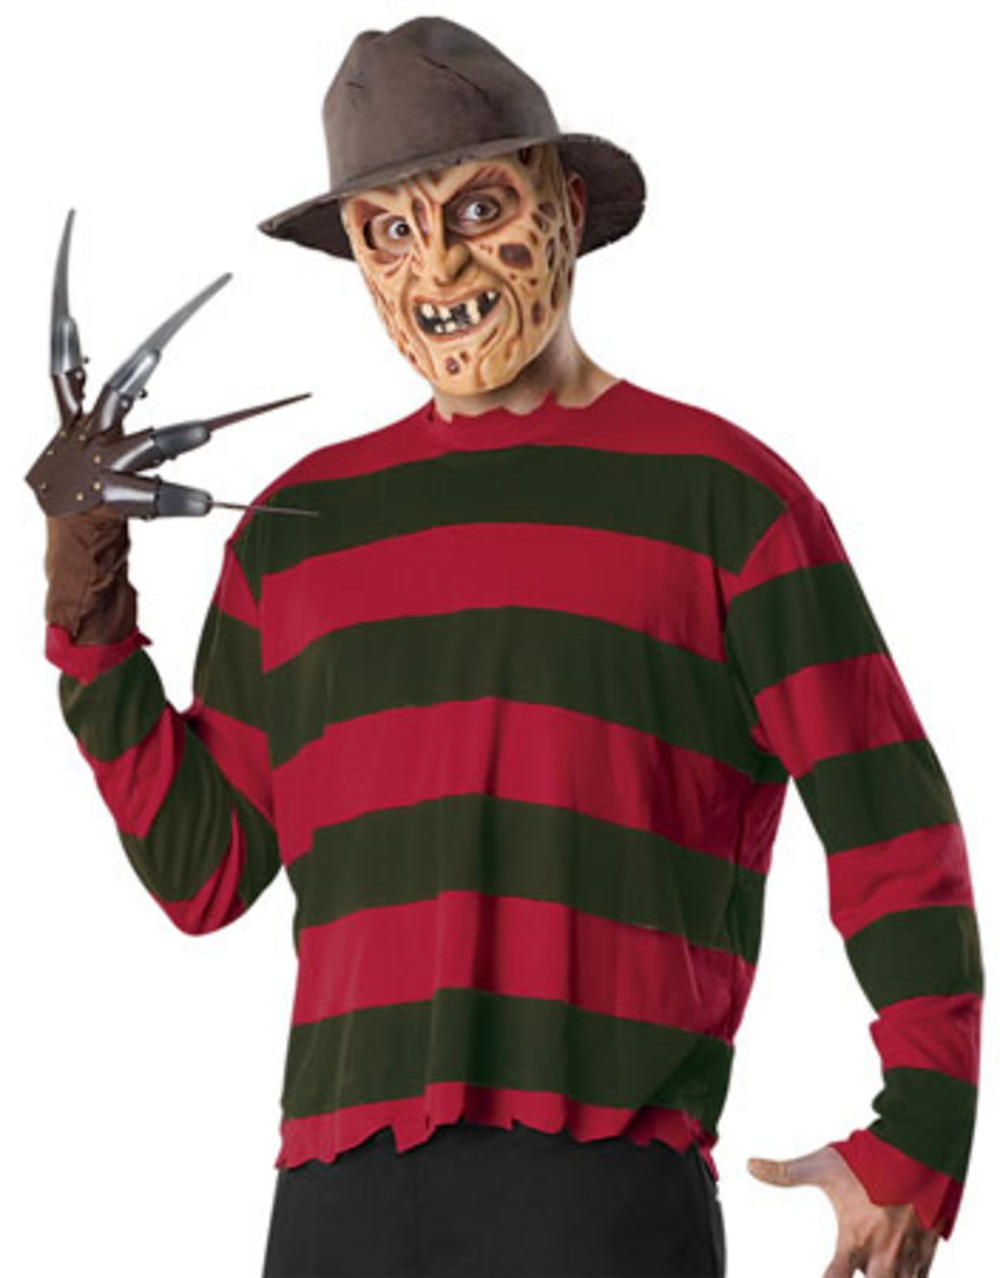 freddy krueger costume | horror film costumes | mega fancy dress